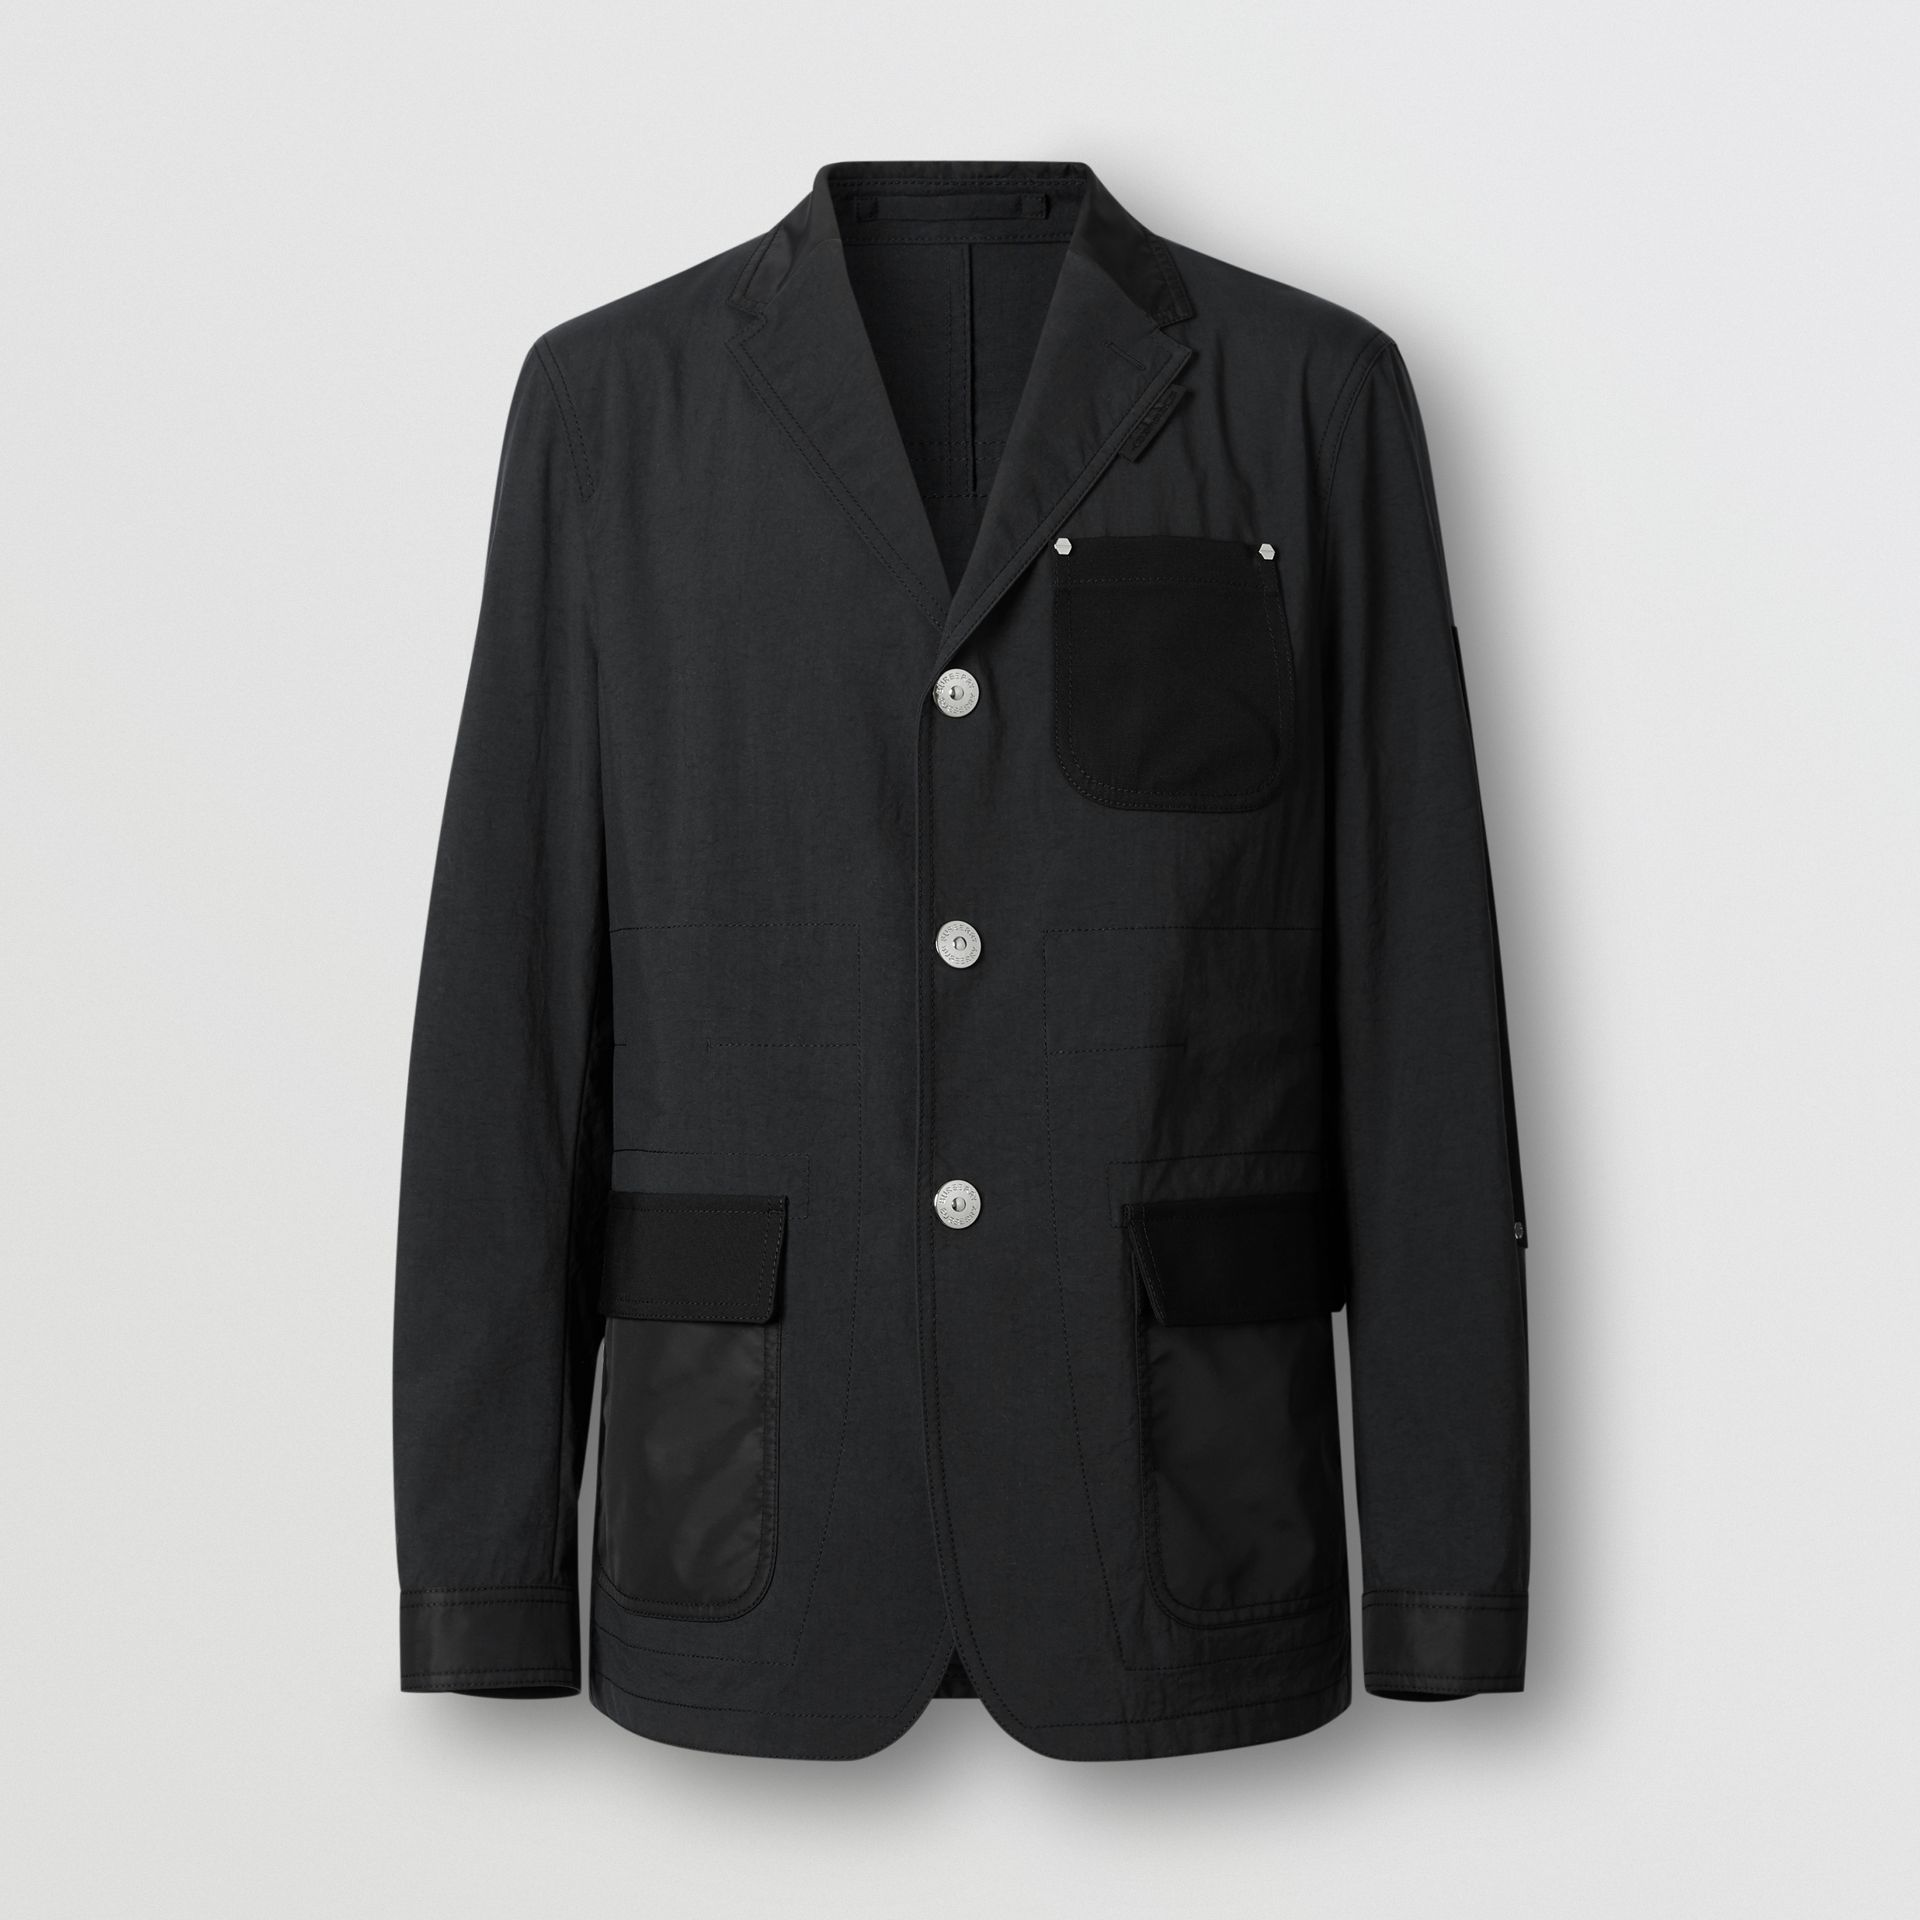 Slim Fit Panelled Nylon and Wool Tailored Jacket in Black - Men | Burberry - gallery image 3